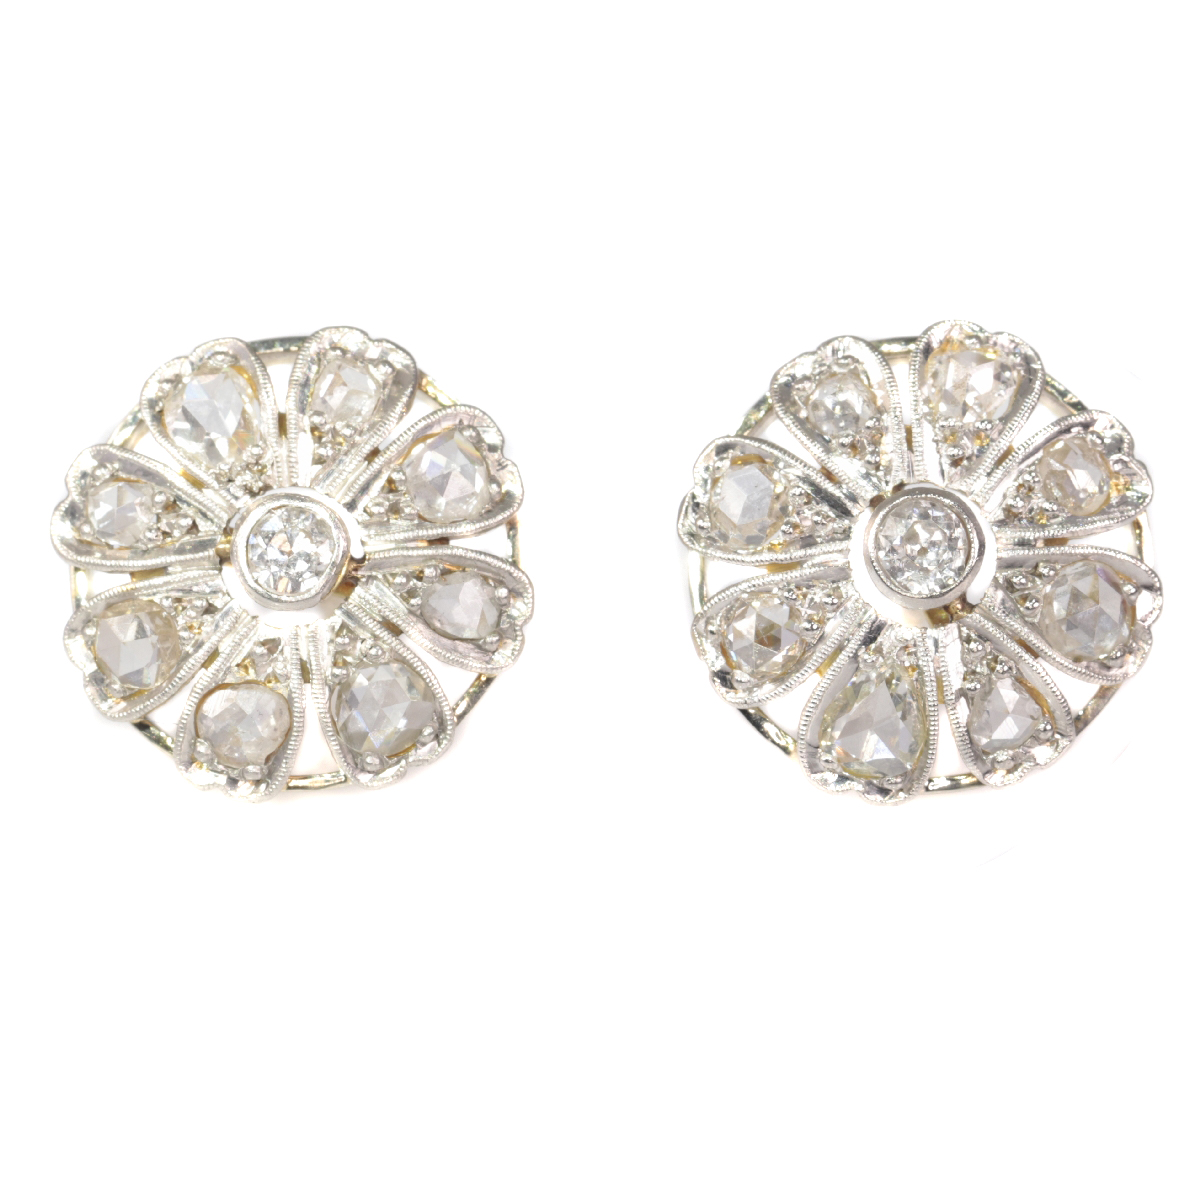 Belle Epoque / Art Deco diamond earstuds